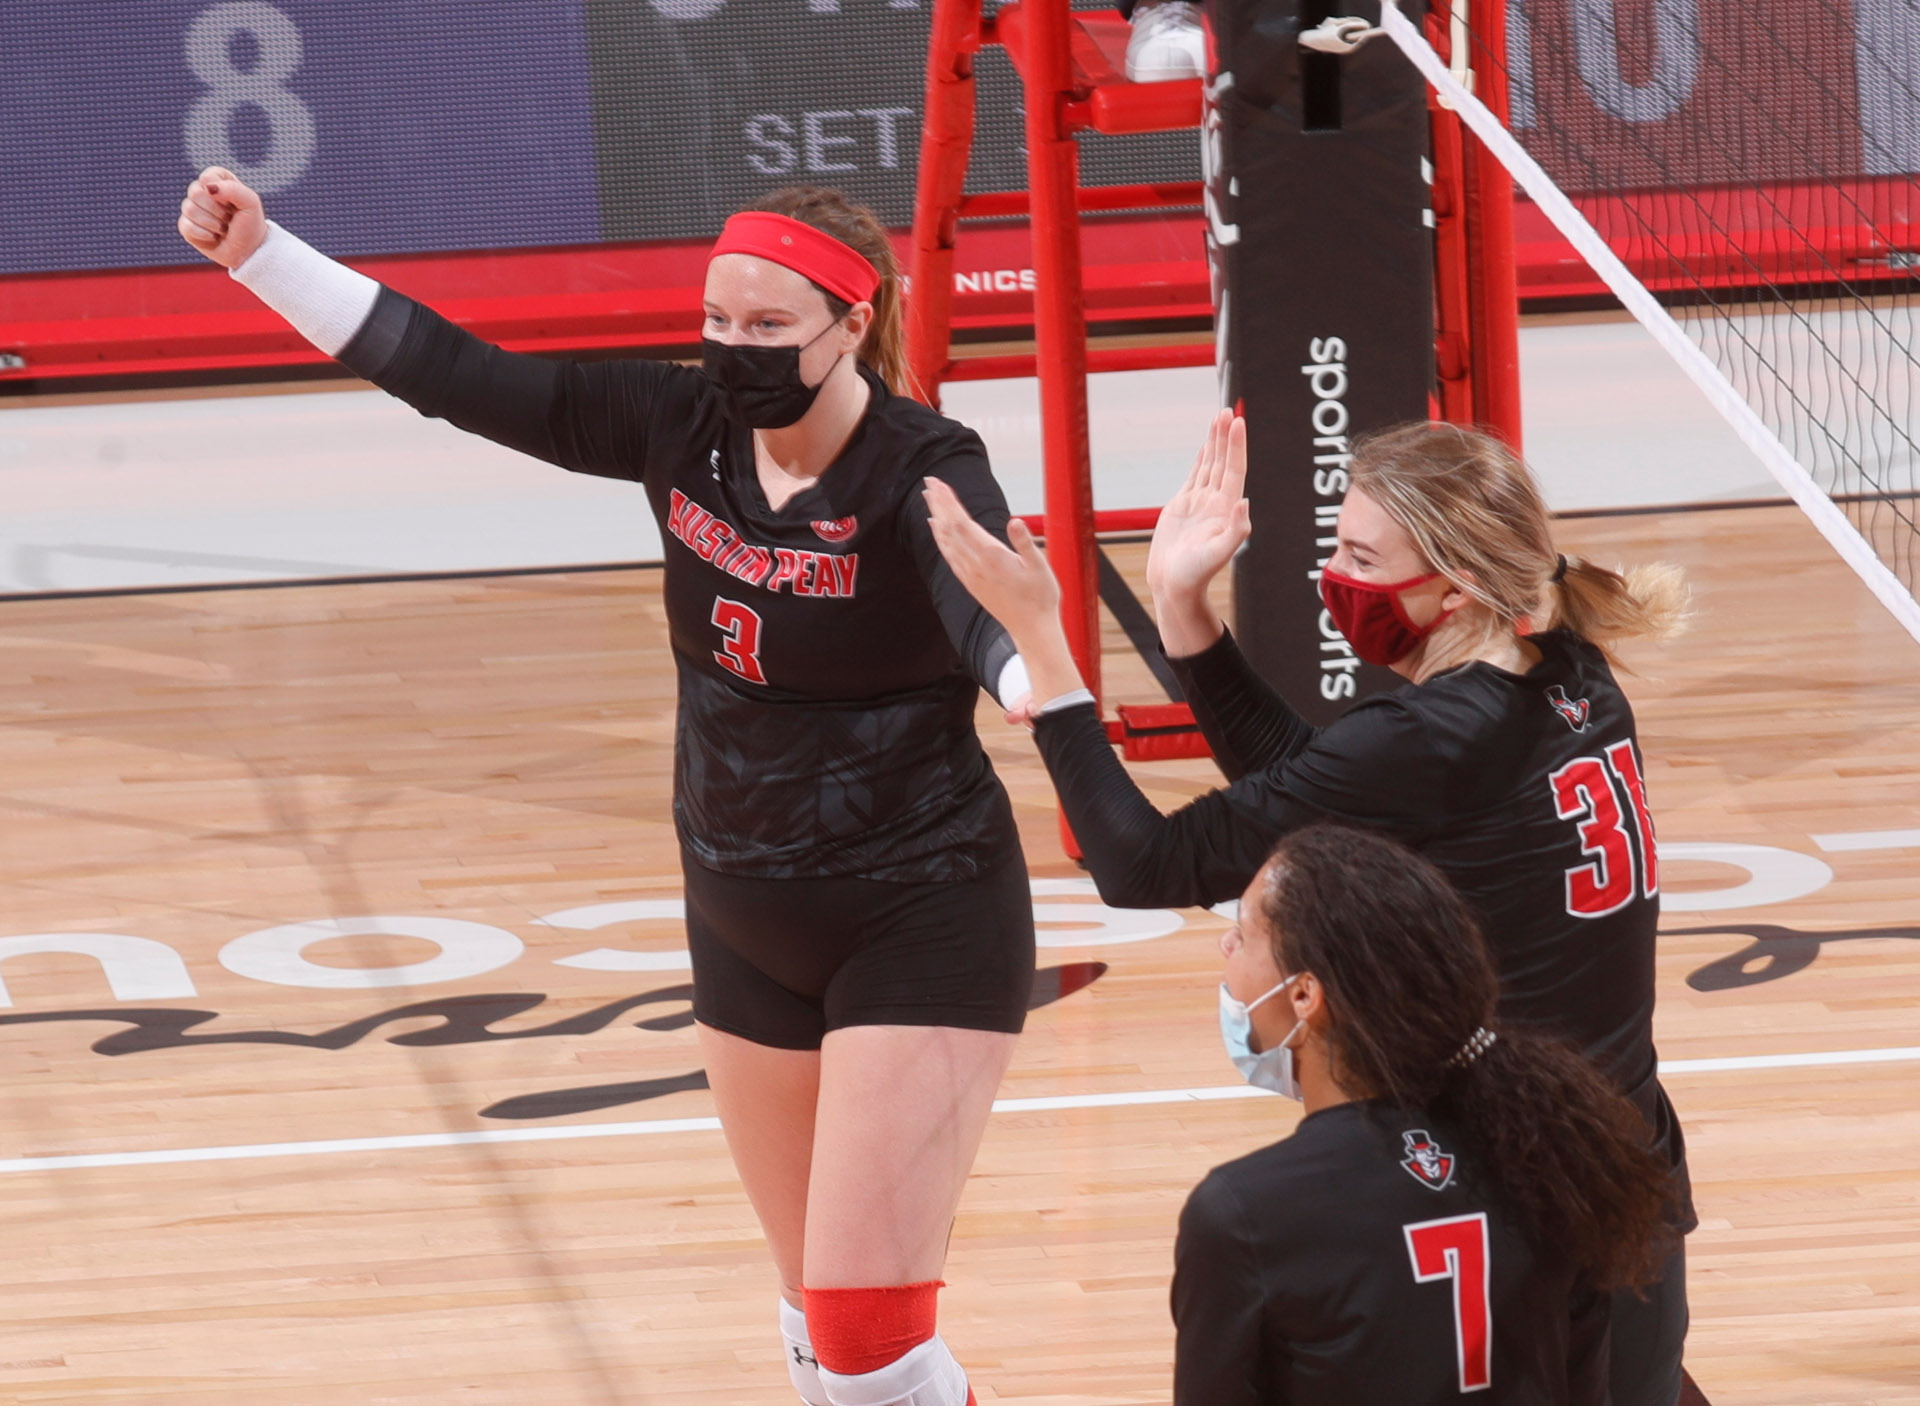 Brooke Moore (3) and the APSU volleyball team swept Tennessee Tech in each of their first two games this season. ROBERT SMITH | APSU ATHLETICS